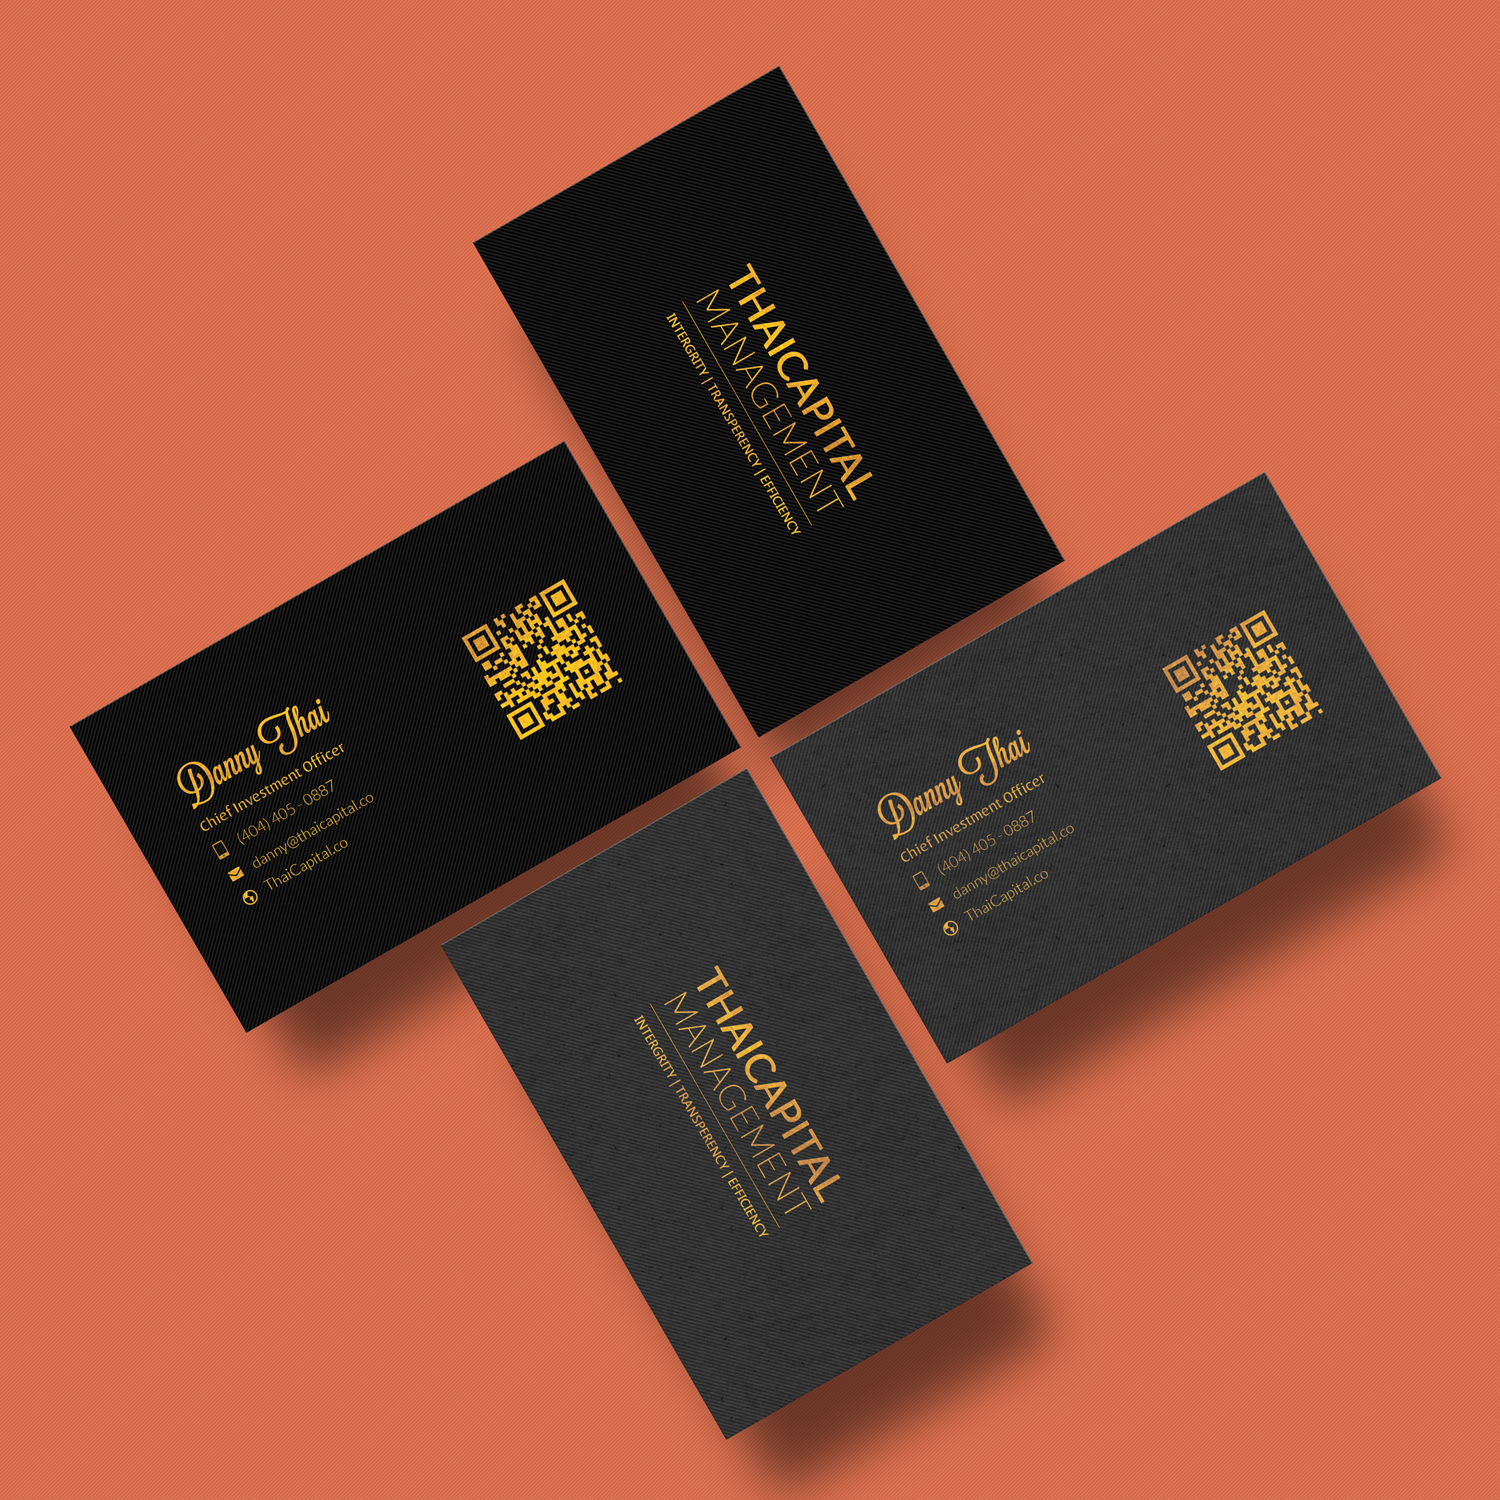 Elegant serious investment business card design for thai capital business card design by kalingaraj for thai capital management design 12449503 reheart Images